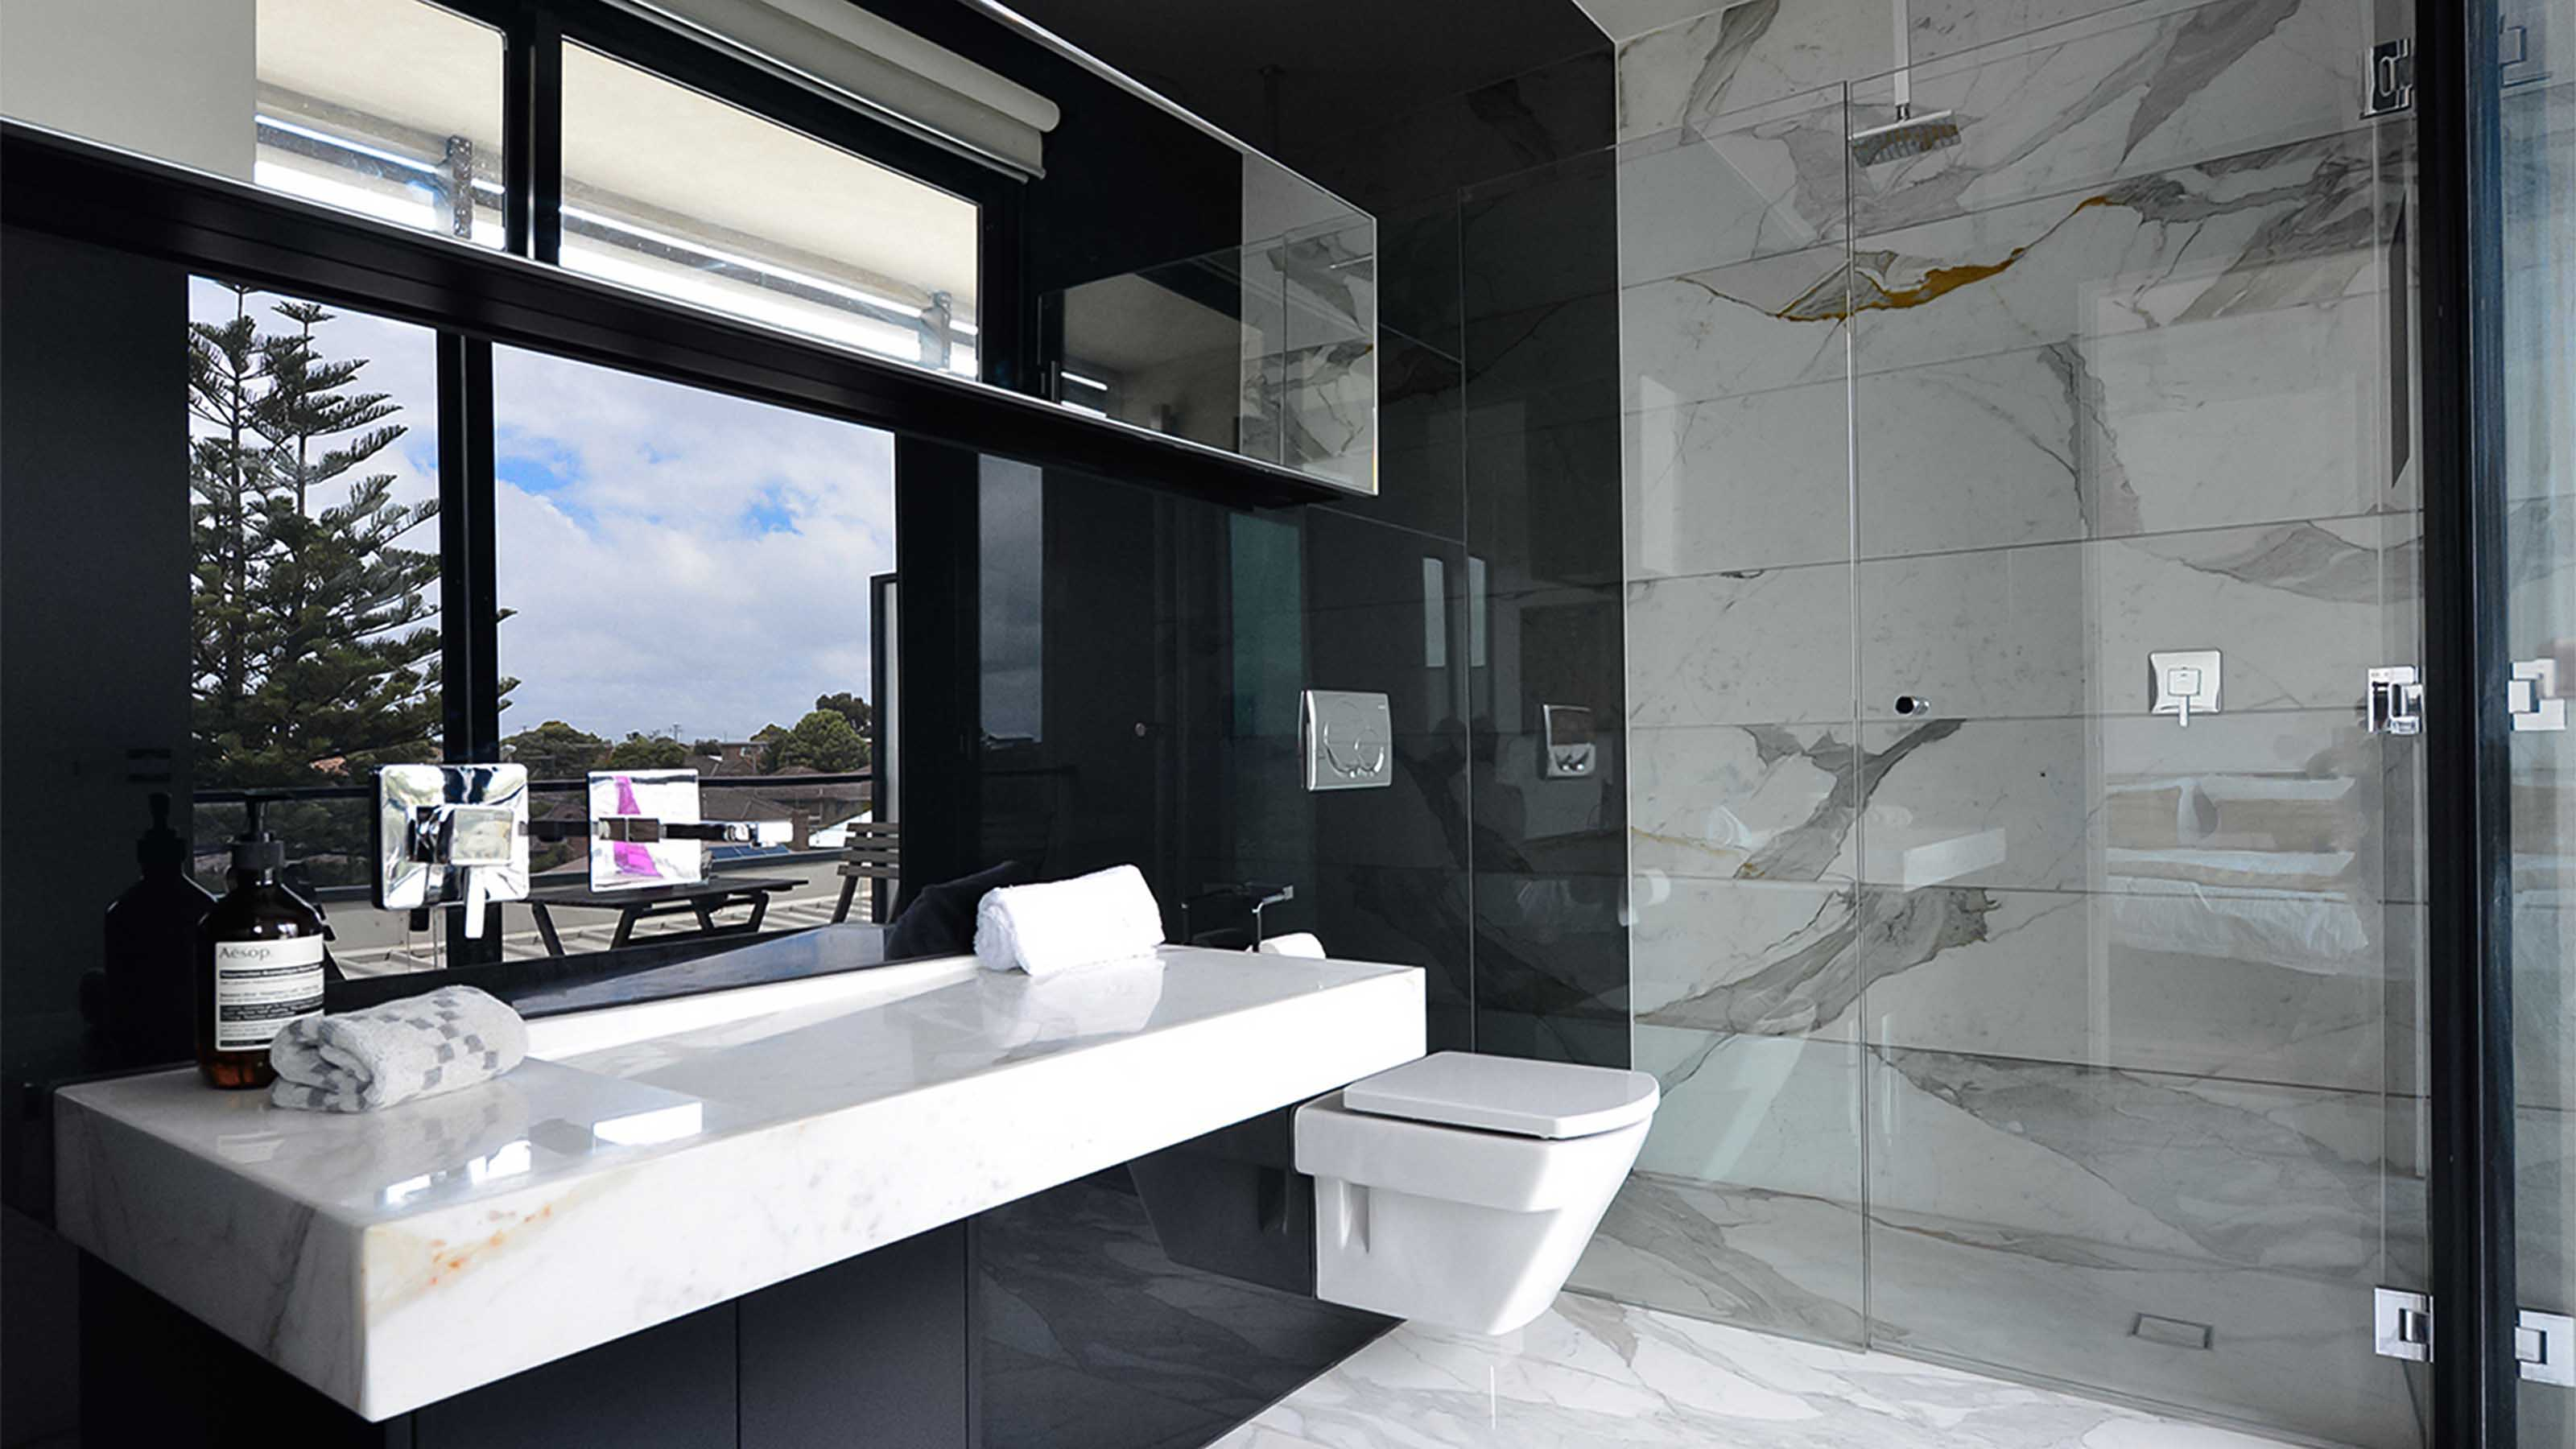 KOLOR™ & ATMOS™ & reFLECT™ - Black Glass Splashbacks - Frameless Shower Screen - Hydraulic Cabinet Mirror -  Wall Hung Toilet - Melbourne - Supplied & Installed by - geelongsplashbacks.com.au